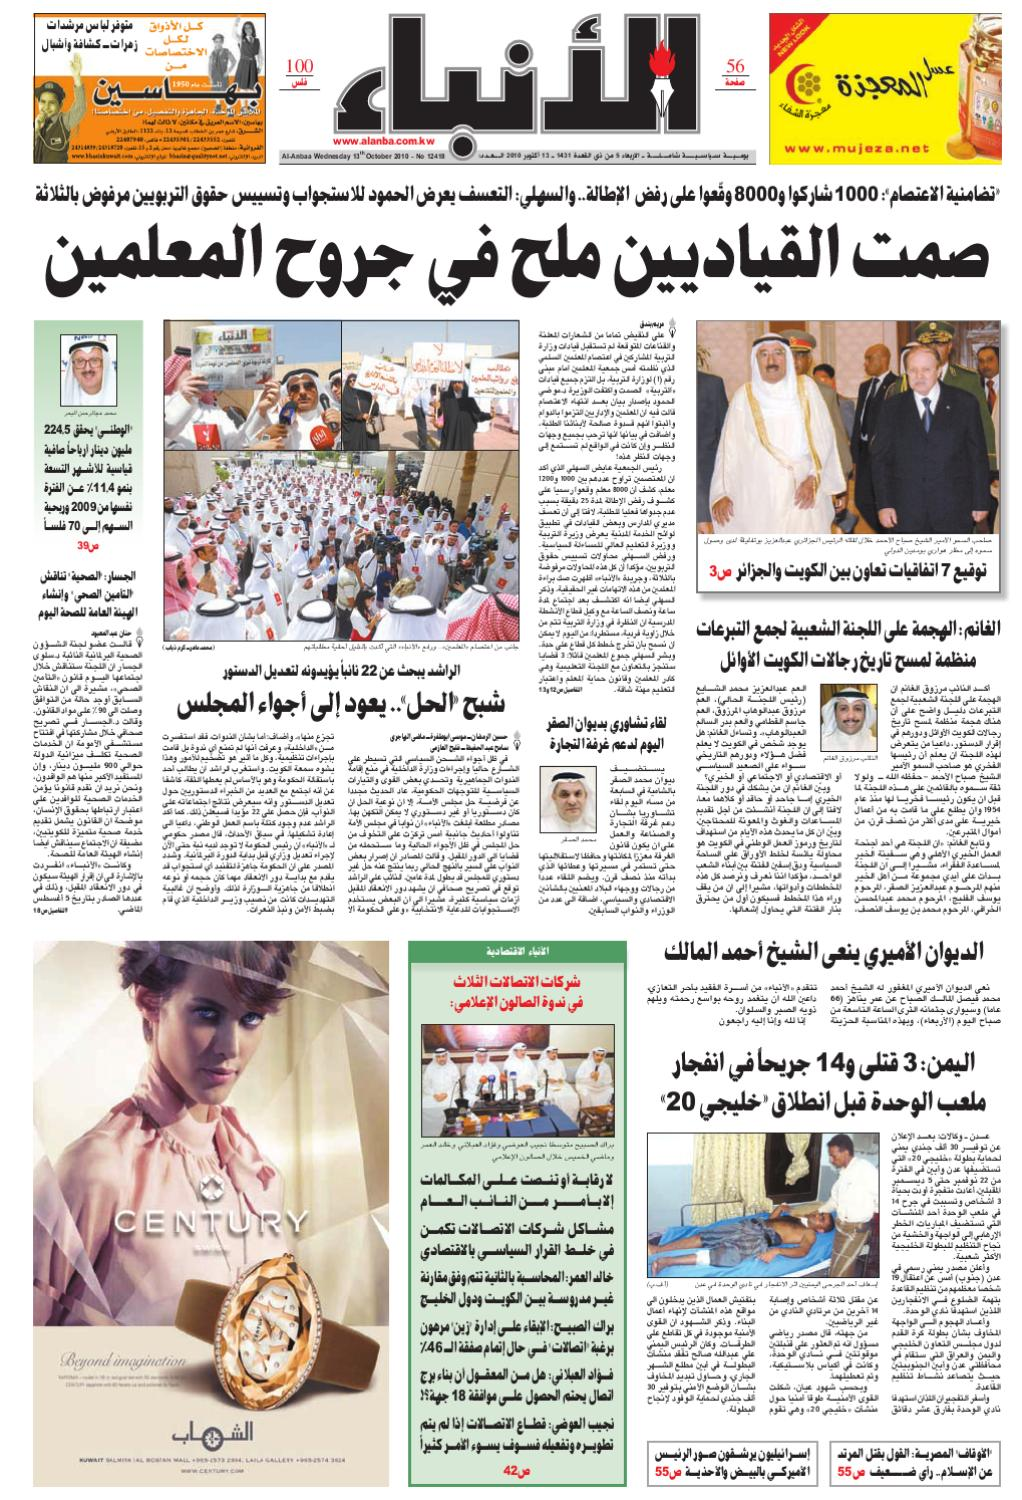 b523a3dbafa28 Al-Anba 13-10-2010 by Al-Anba Newspaper - issuu